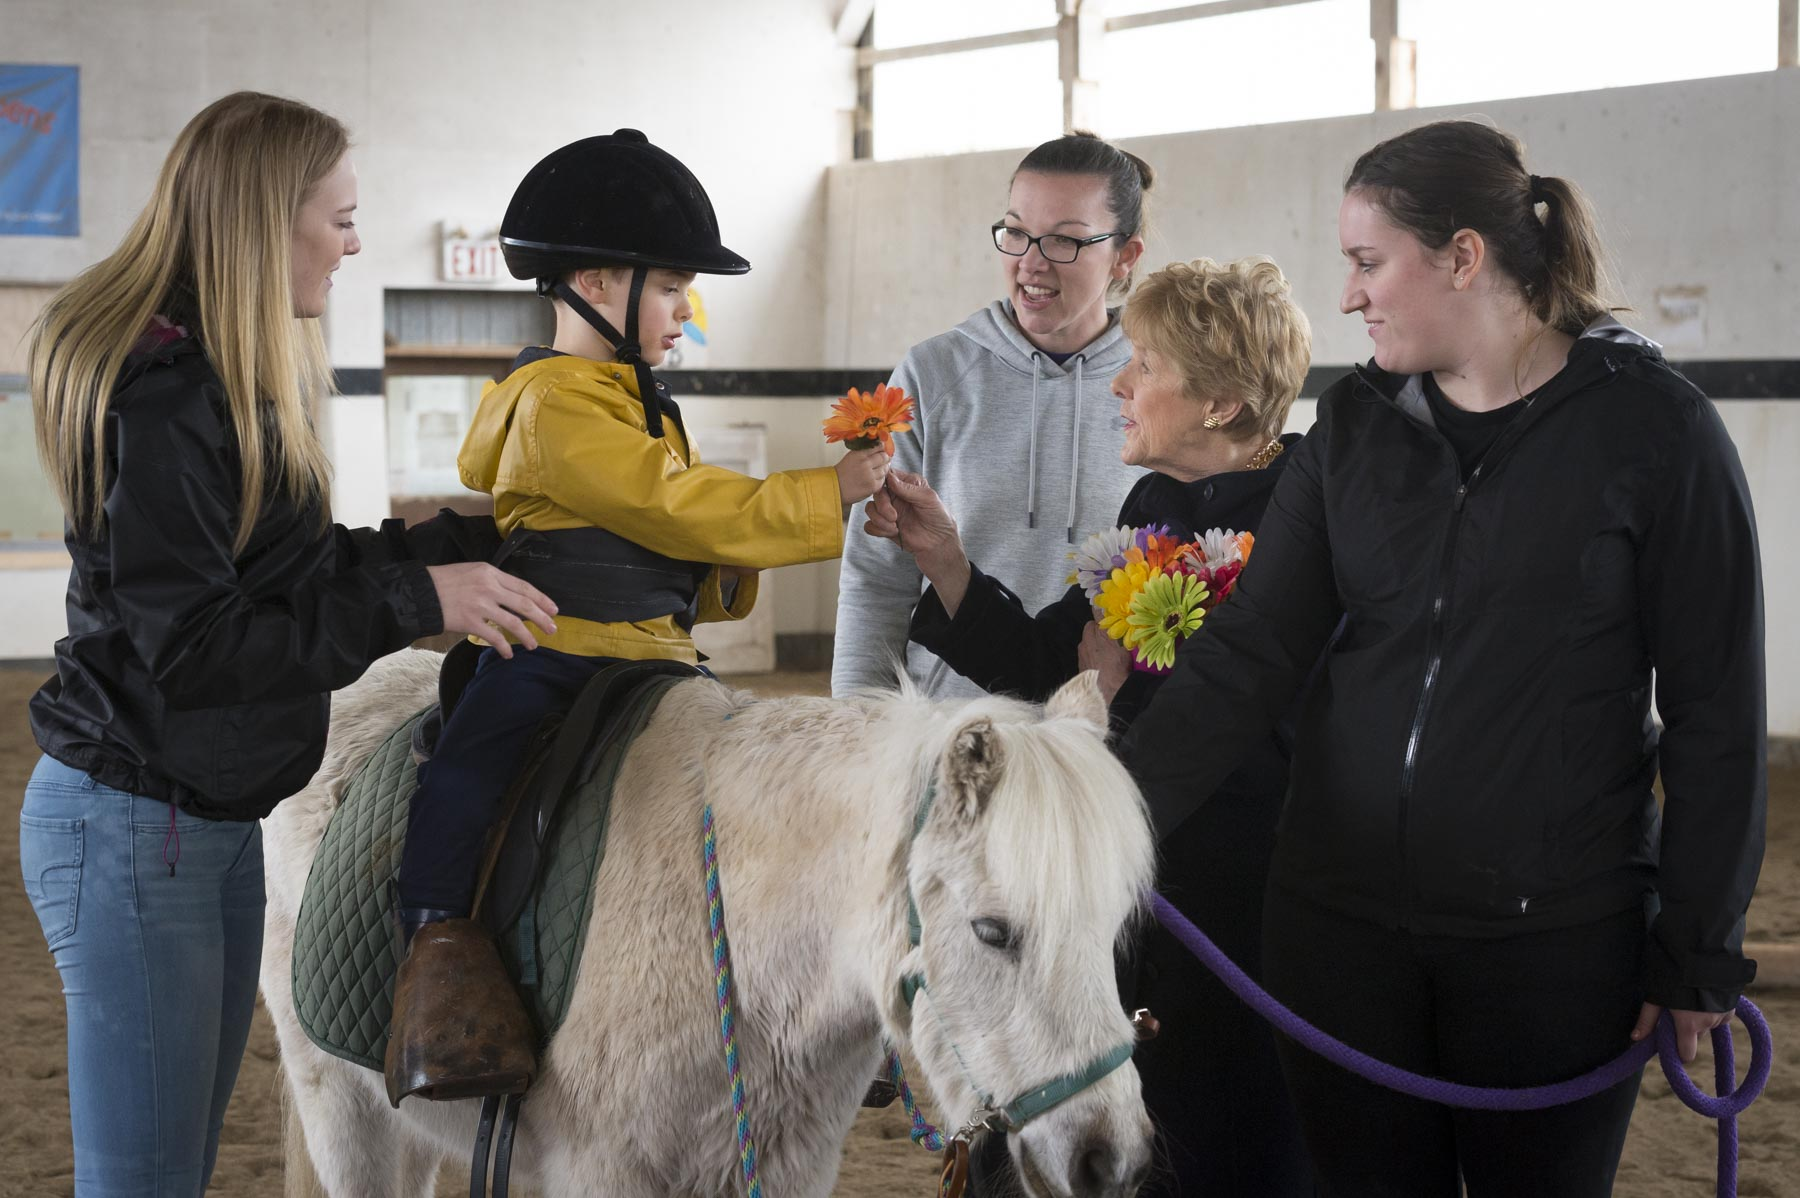 In the riding class, students collected flowers and offered them to Mrs. Johnston. Pride Stables provides a safe, high-quality riding program for persons with disabilities.